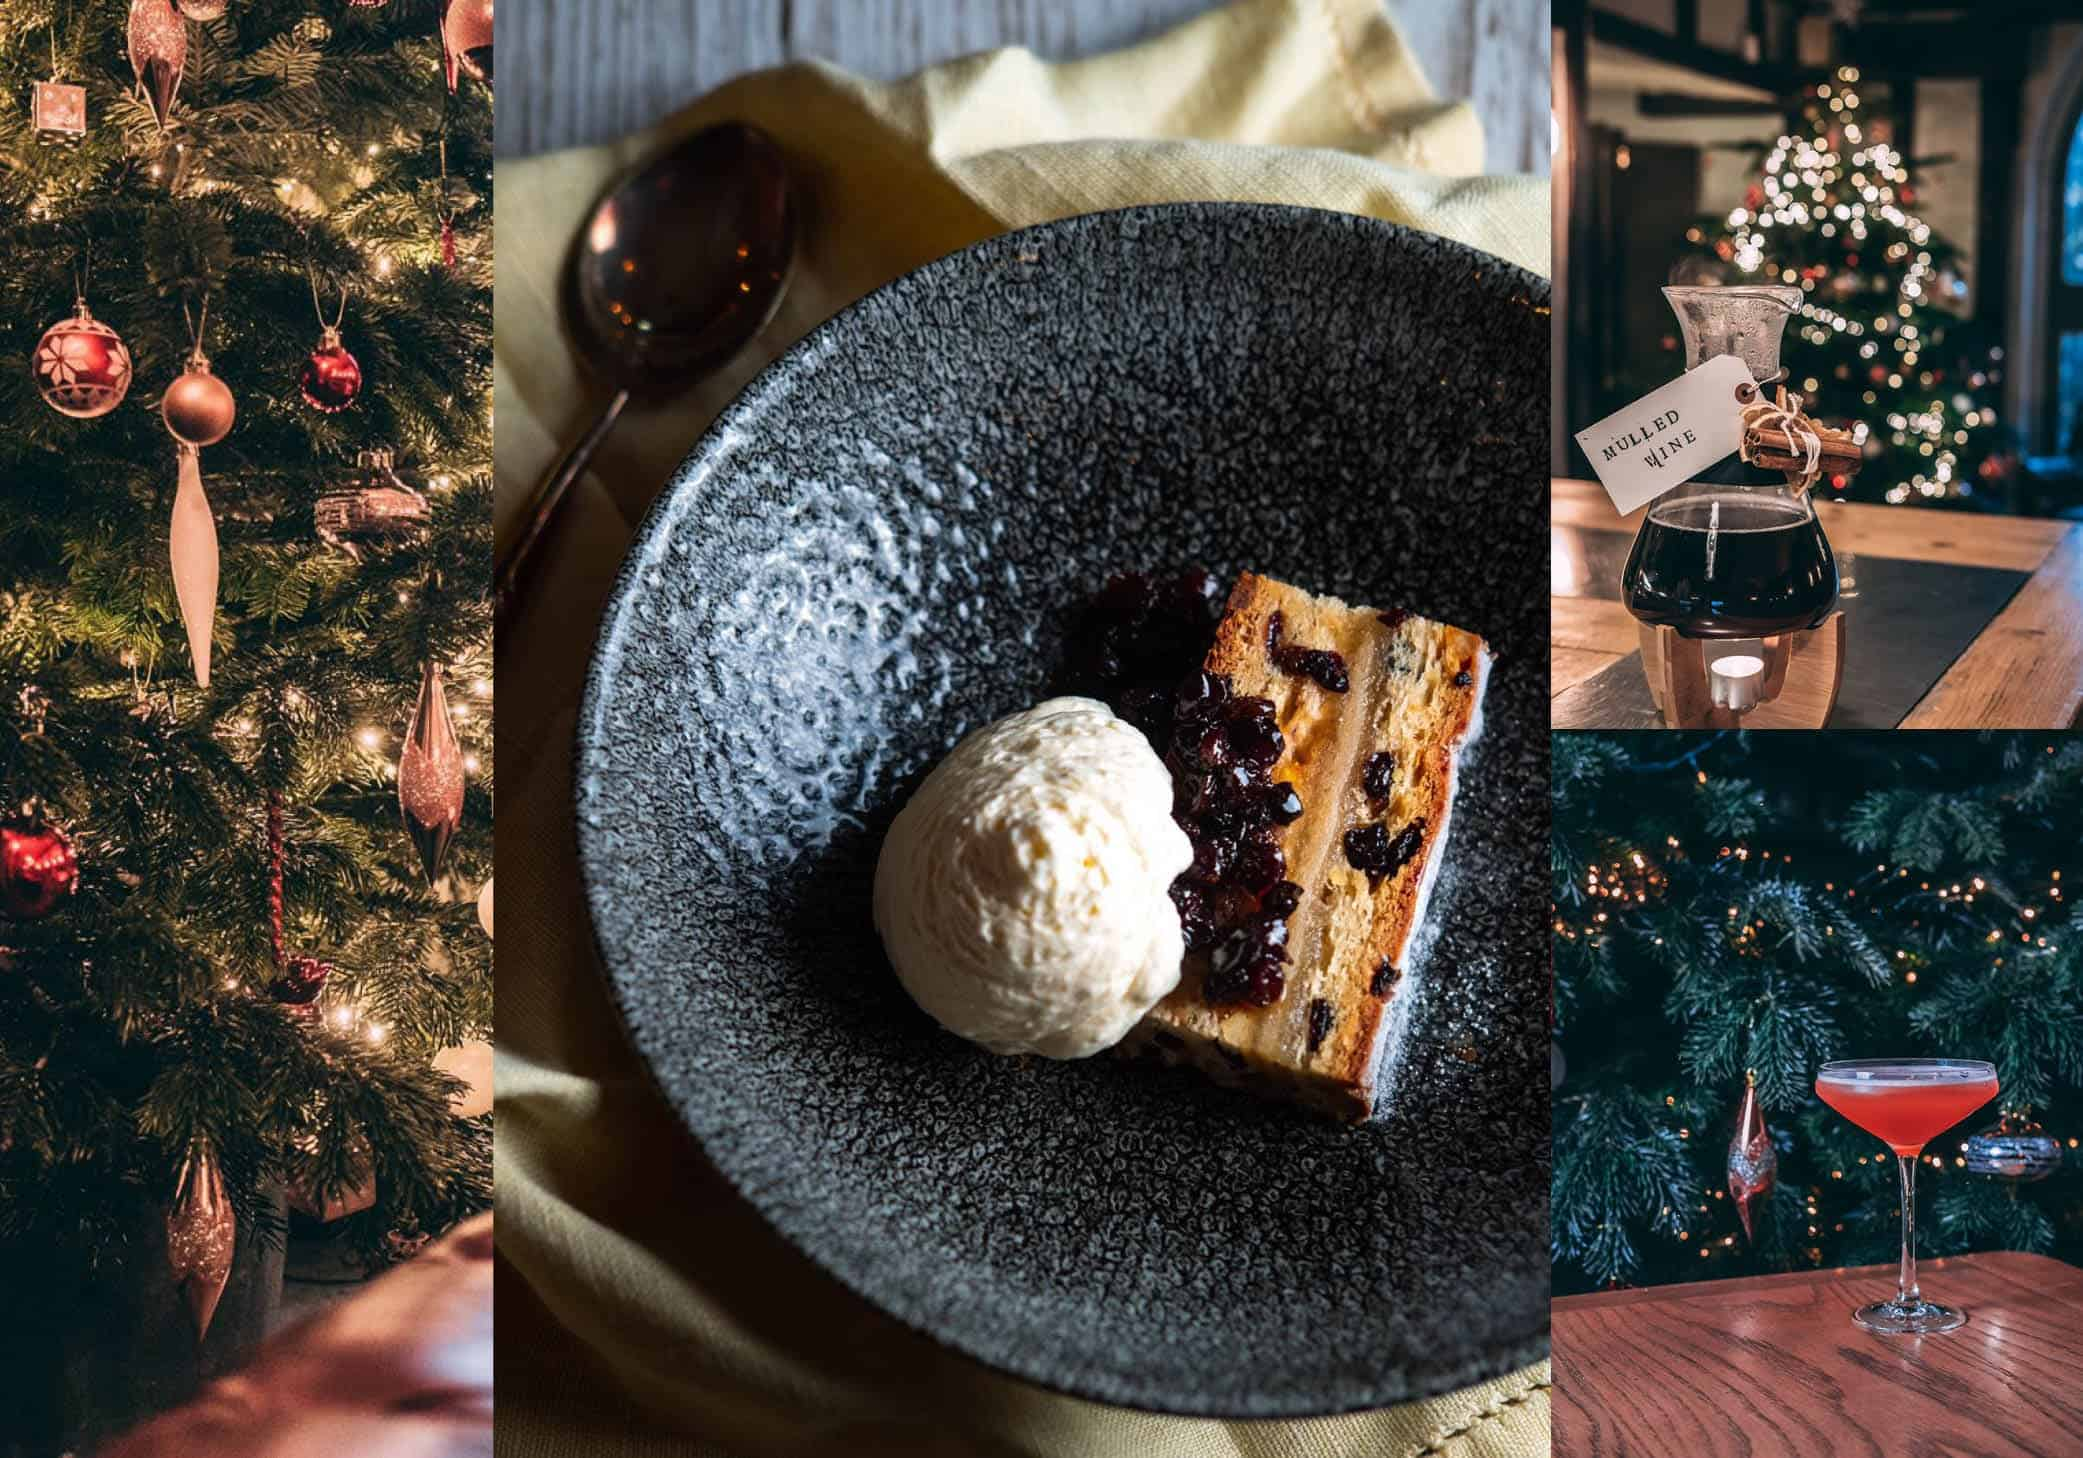 Desserts, cocktails and mulled wine with Christmas decorations at The Small Holding